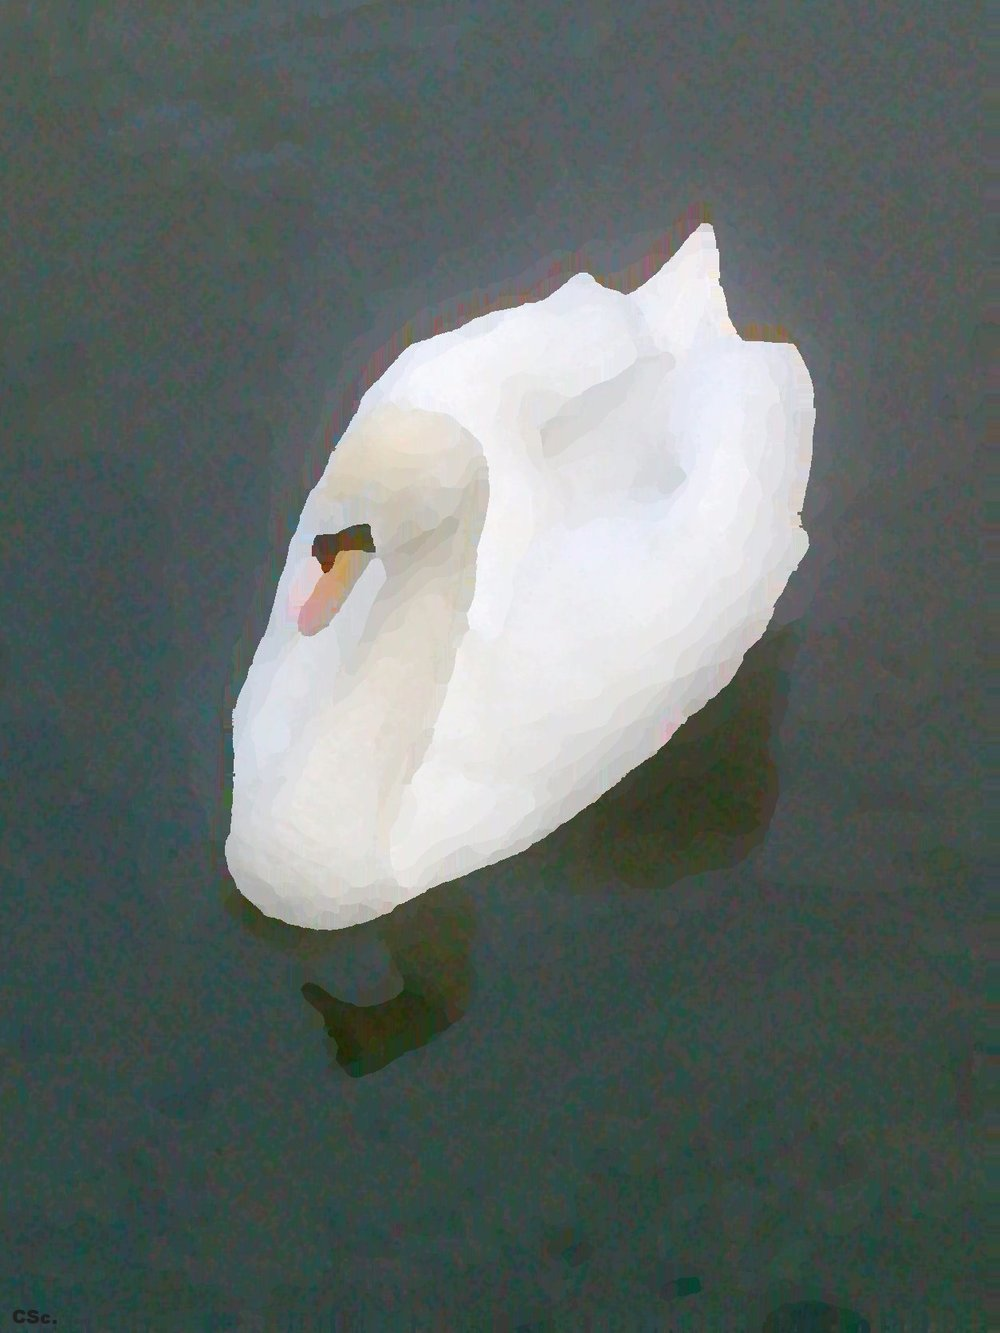 Swan, 2016, digital image